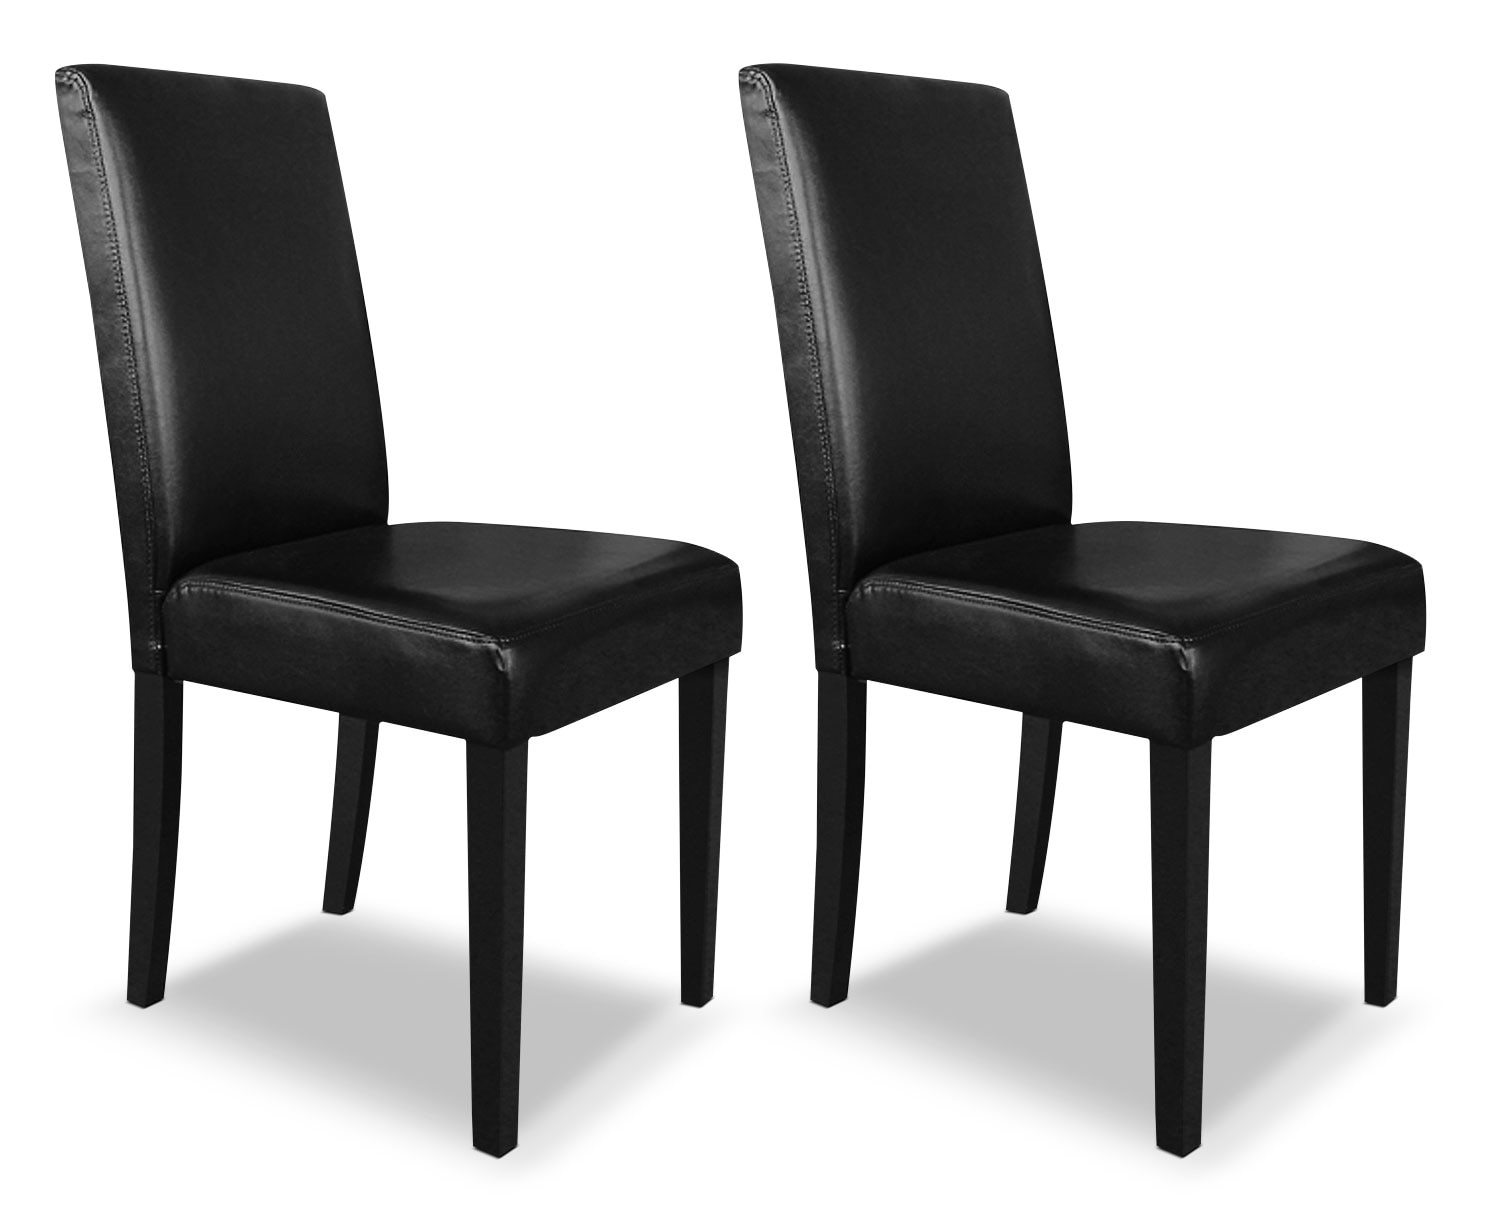 Black fabric dining chairs - High Back Fabric Dining Room Restaurant Dining Chairs